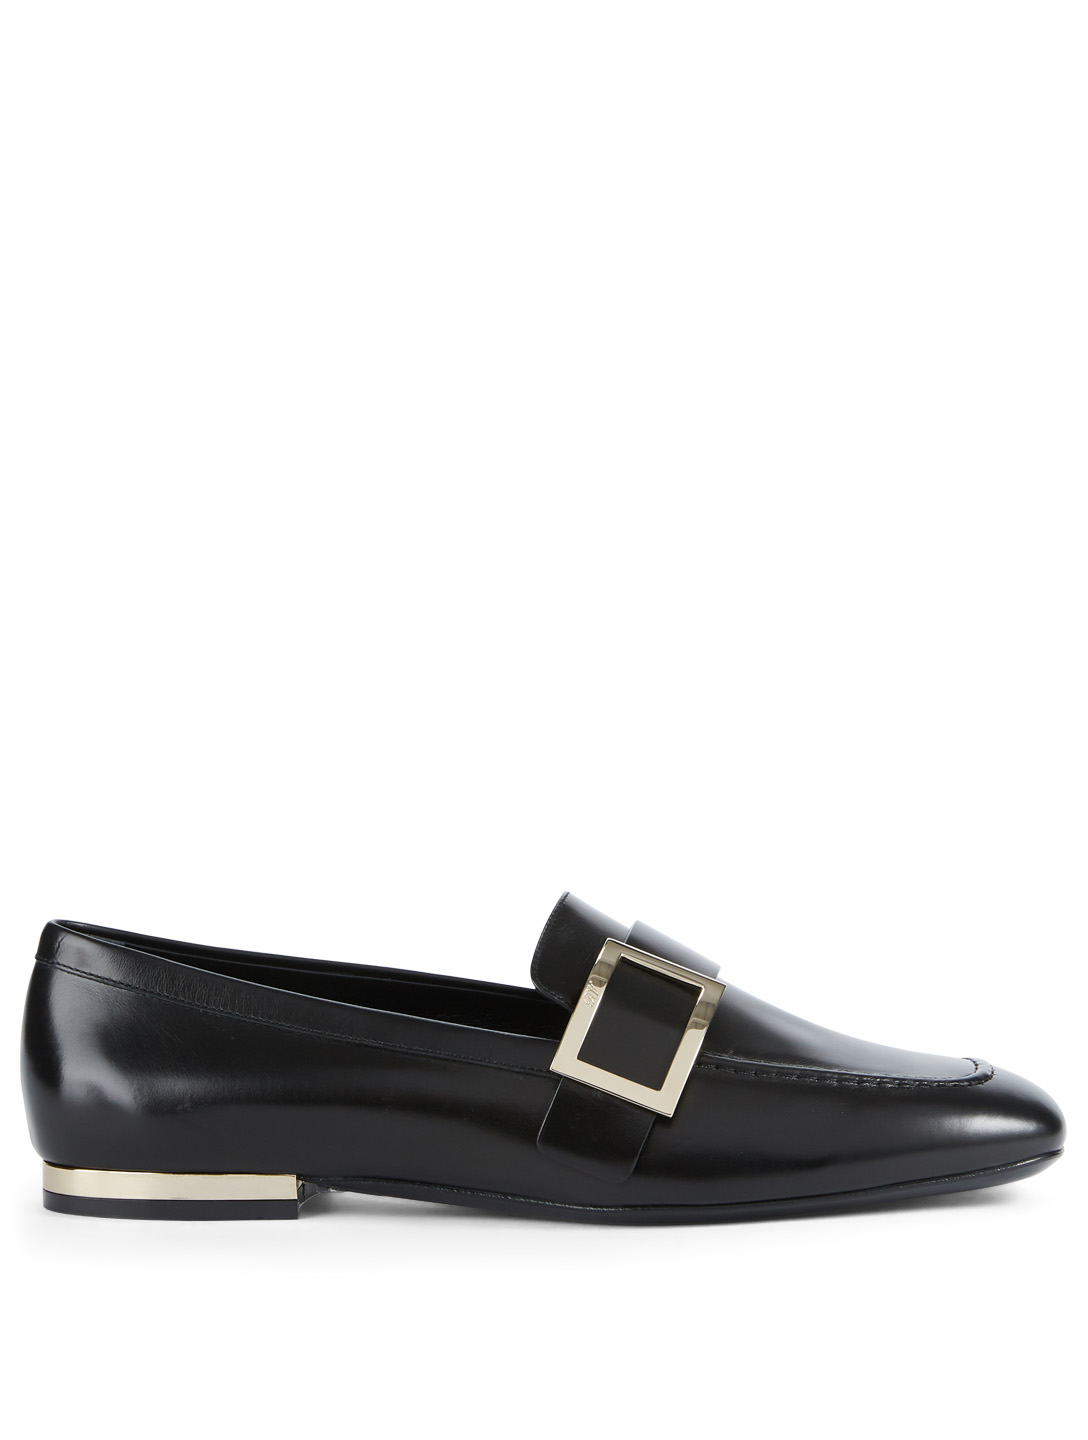 ROGER VIVIER Leather Loafers With Buckle Womens Black